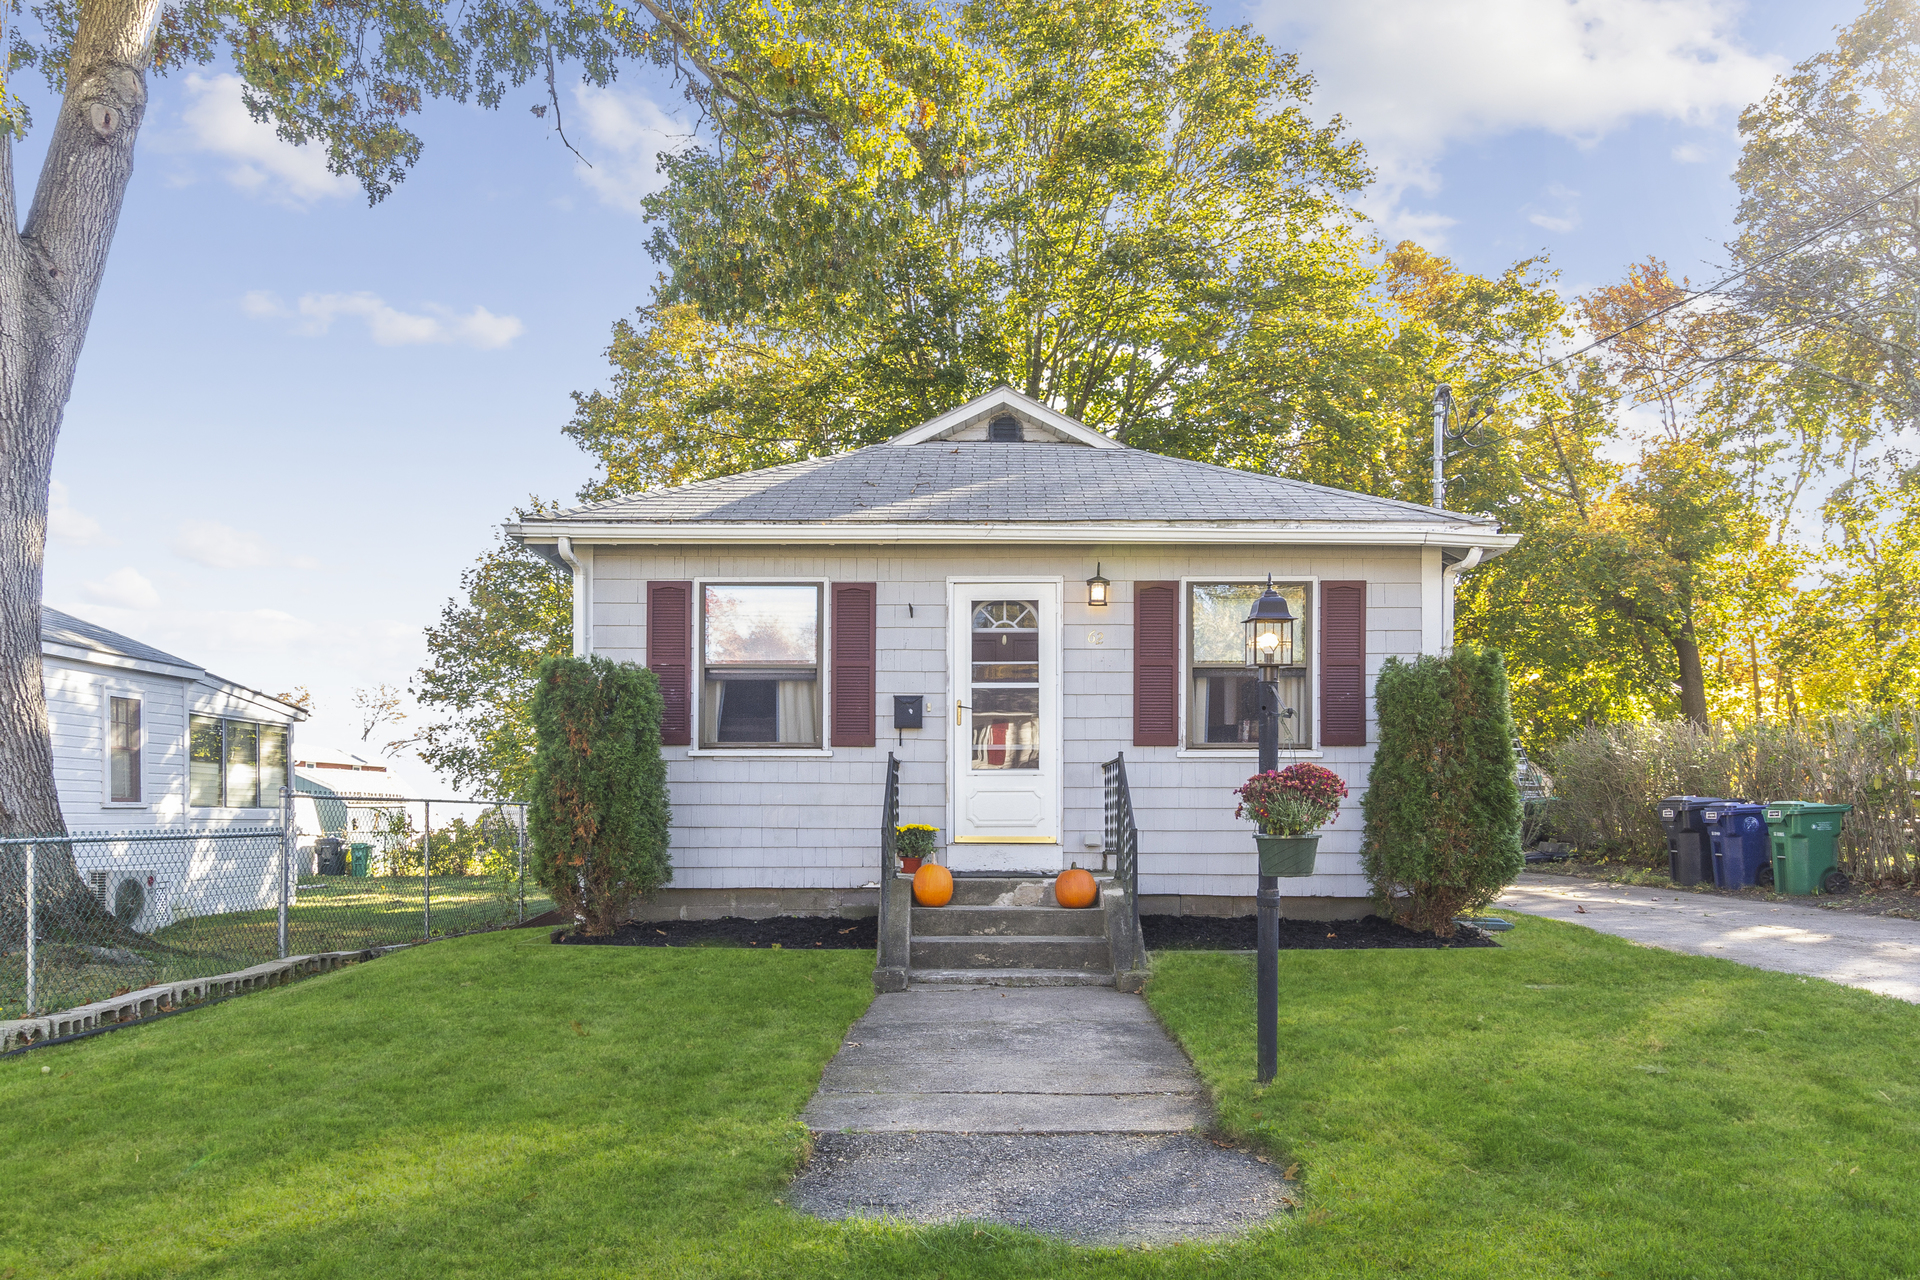 62 Arlington Ave, Warwick, RI | Sat 11/16 from 2:00 - 3:30pm